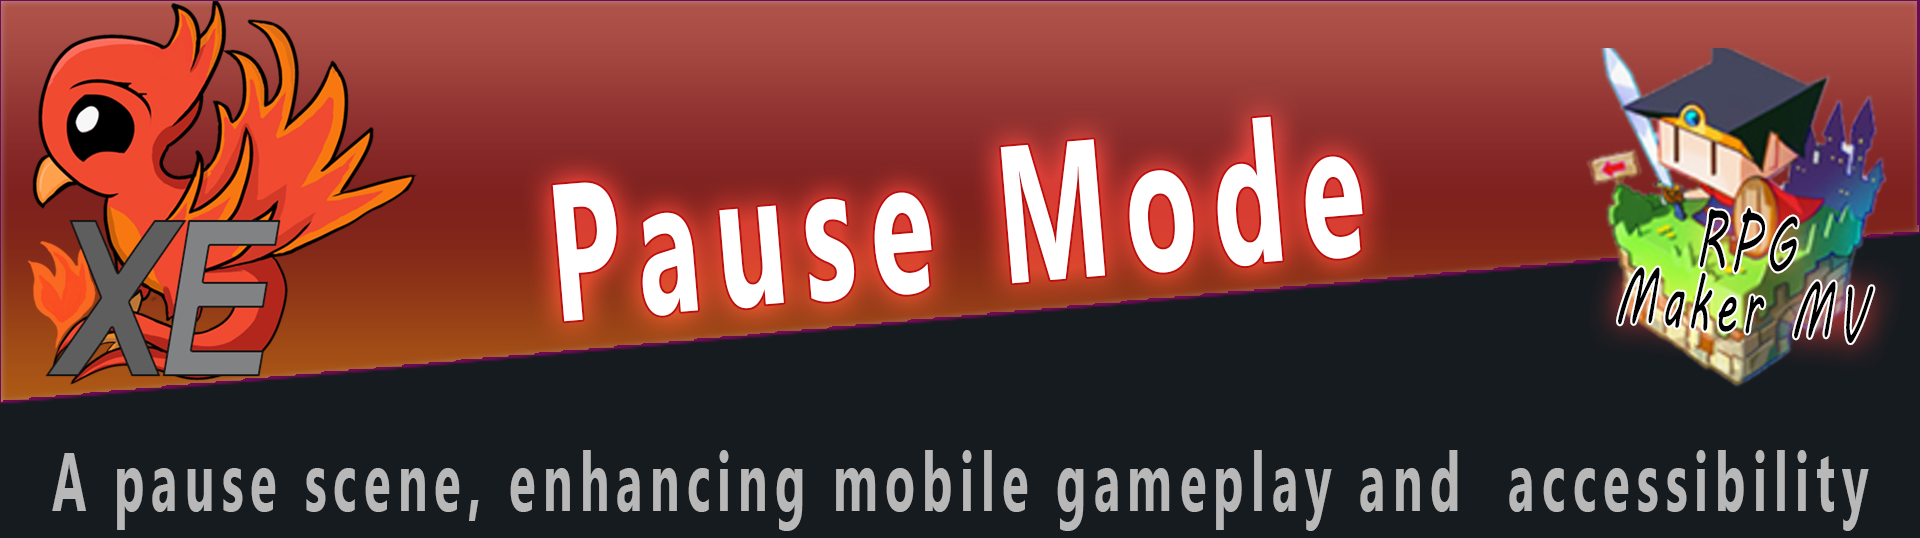 Pause Mode X for RPG Maker MV